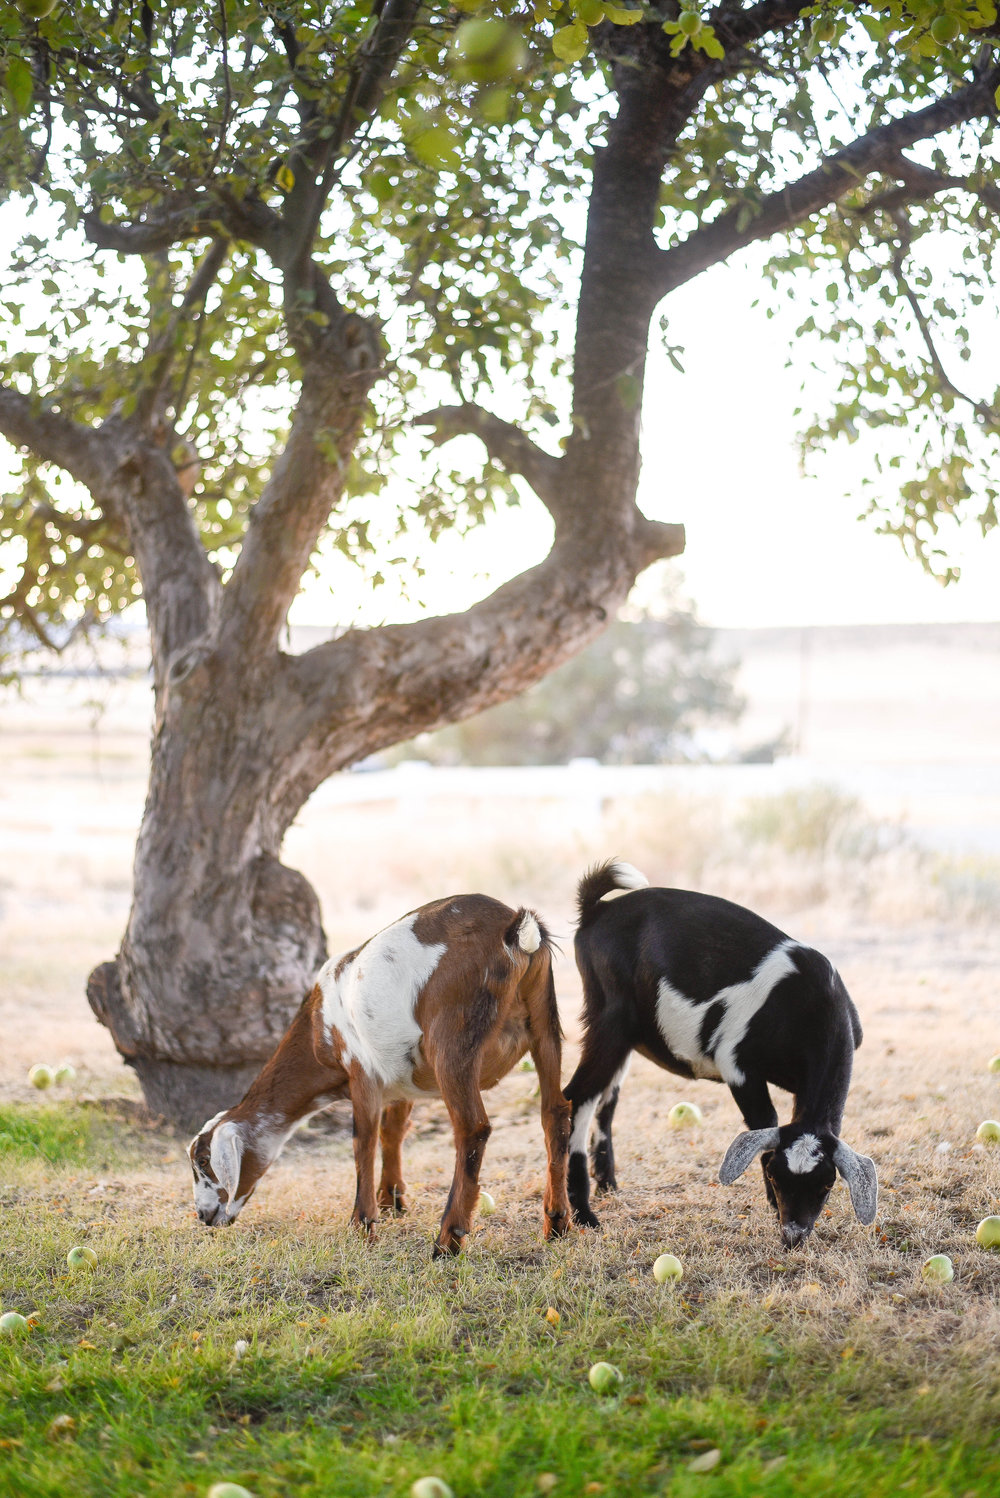 Copper toxicity in goats | boxwoodavenue.com